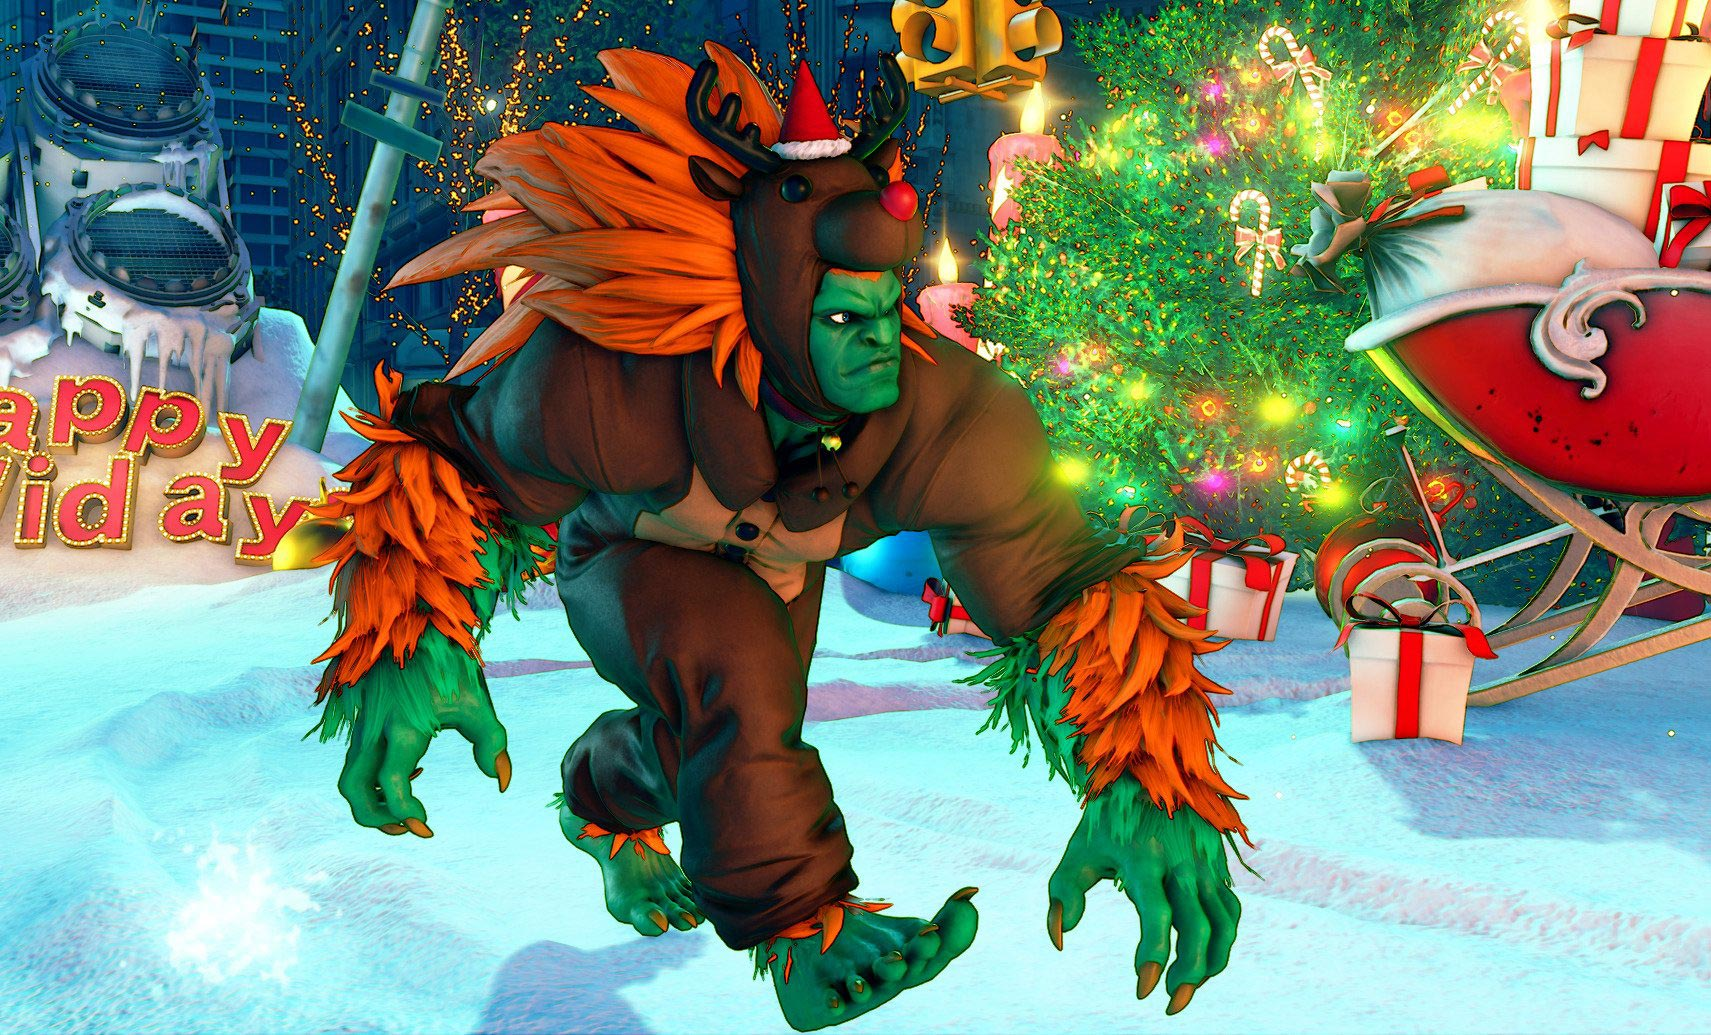 New Street Fighter 5 holiday costumes 1 out of 12 image gallery